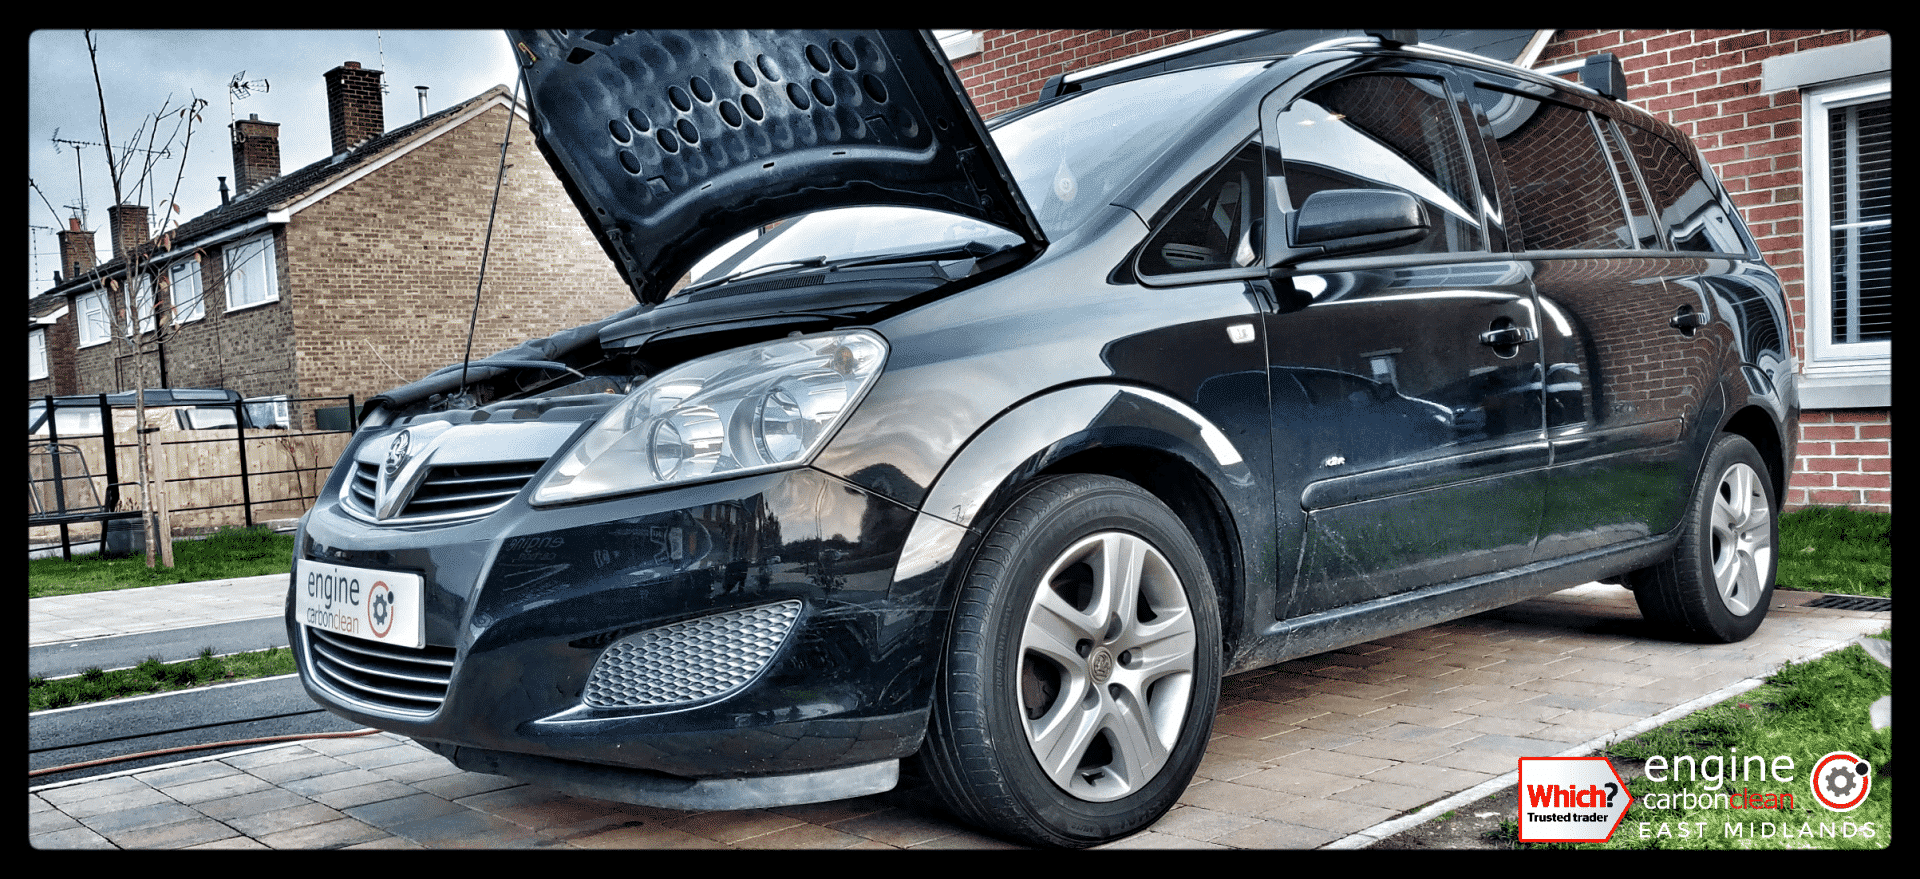 Diagnostic consultation and Engine Carbon Clean - Vauxhall Zafira 1.6 petrol (2010 - 139,614 miles)